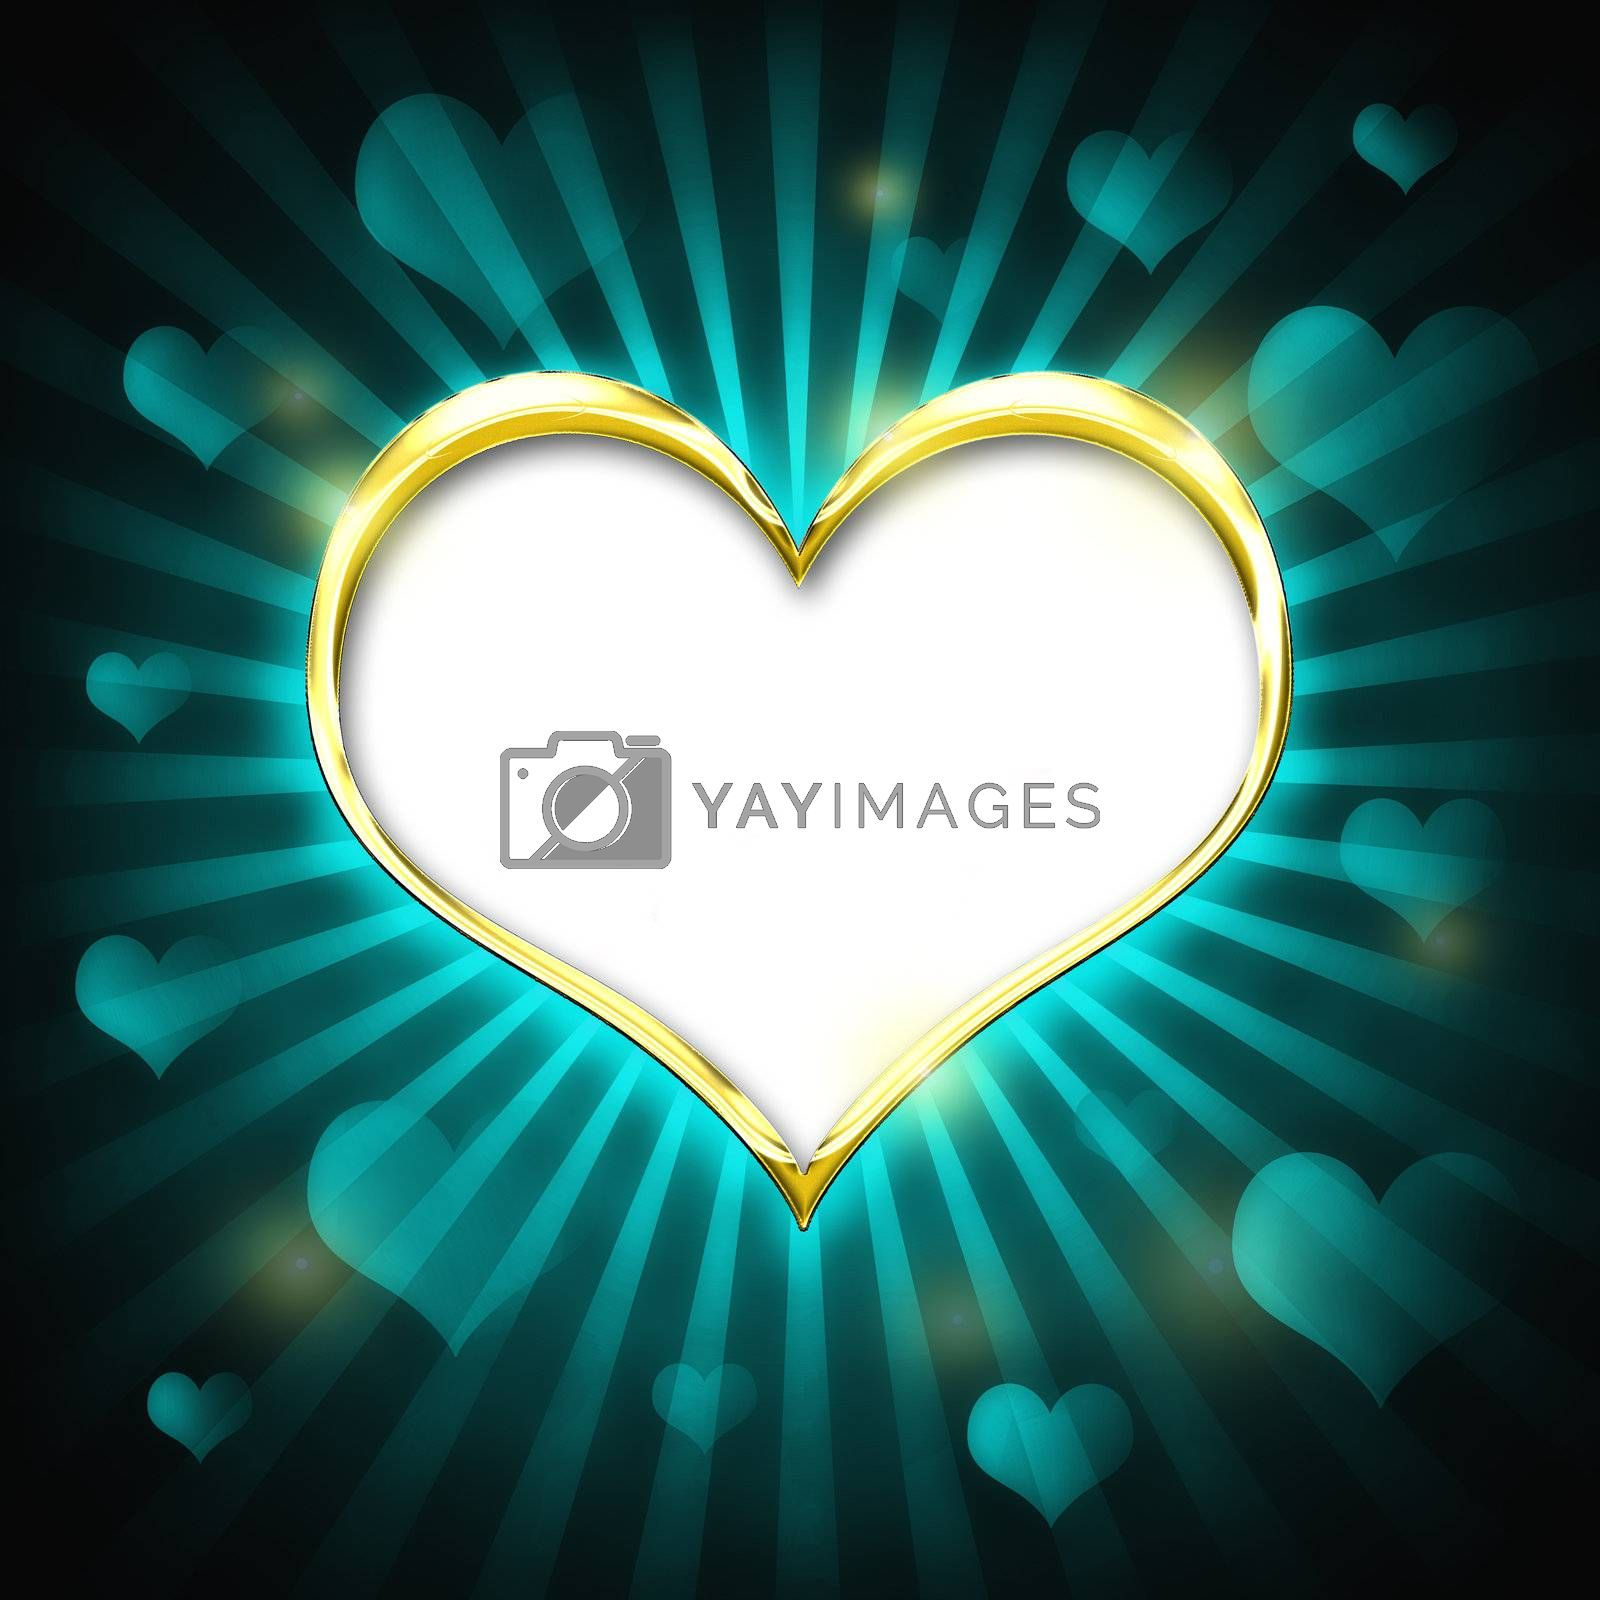 Valenties Day Card with a big golden heart and many smaller hearts on a green background